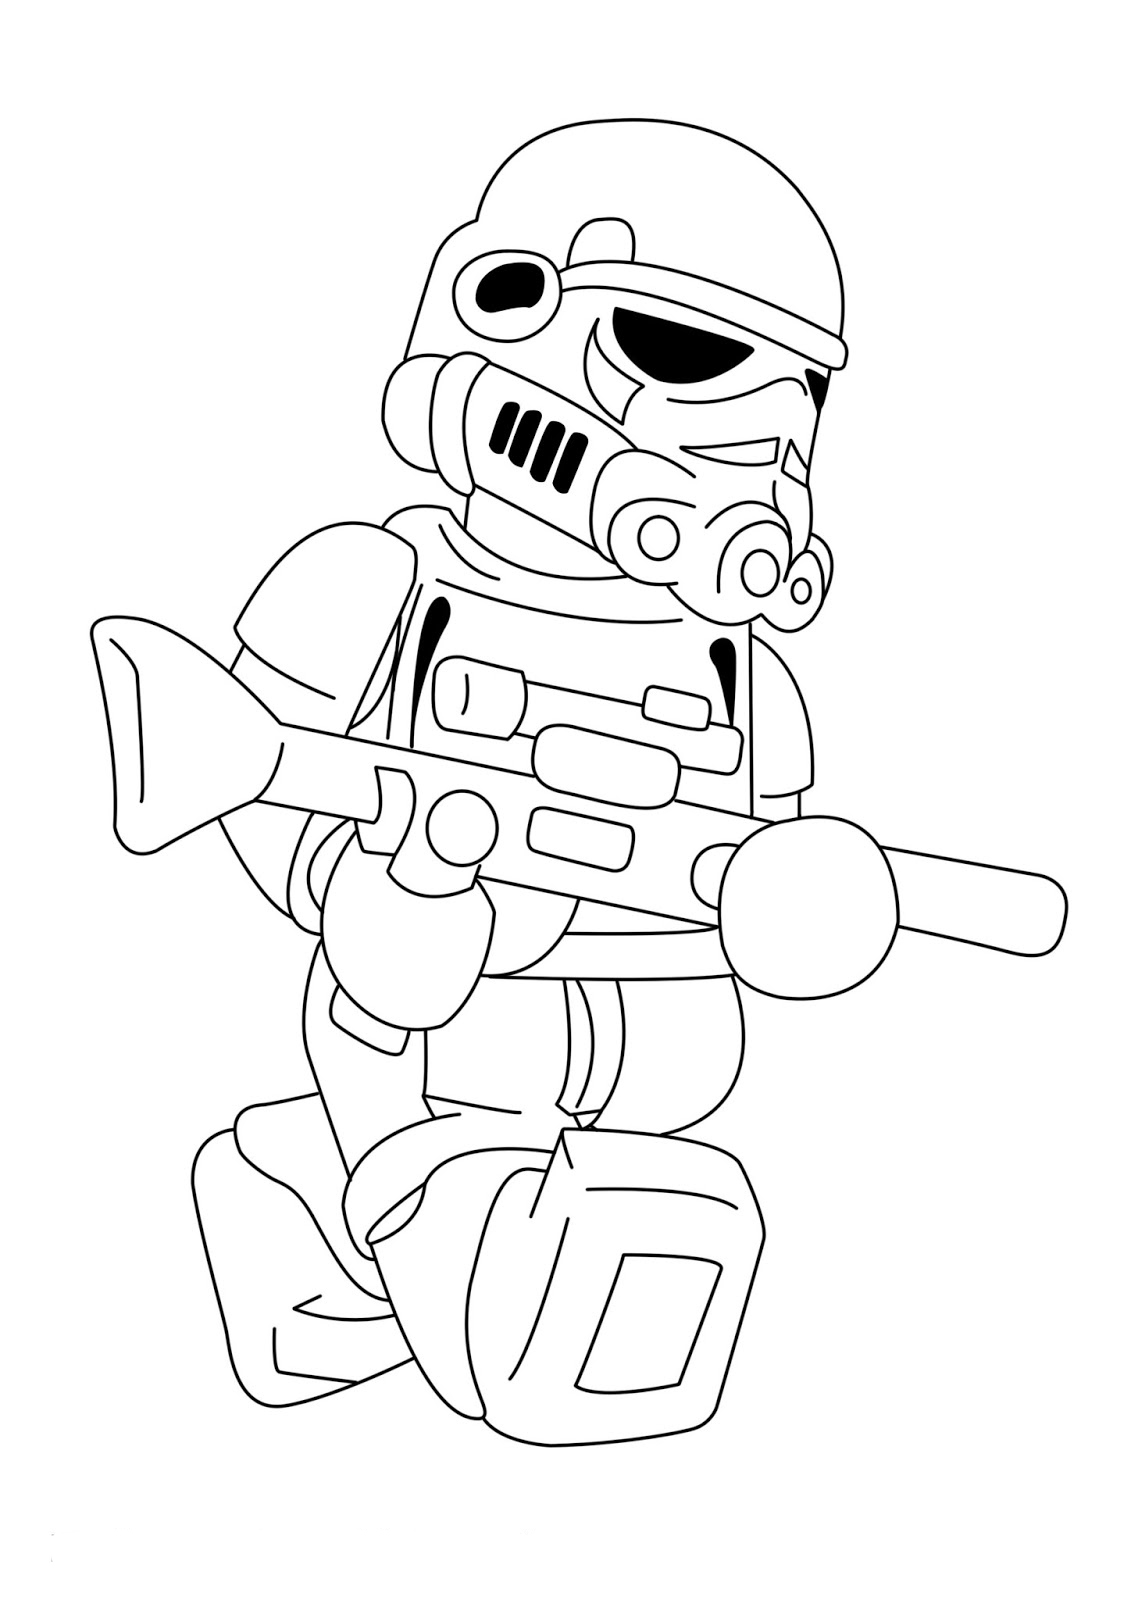 lego star wars coloring pages printable lego star wars coloring pages to download and print for free lego pages coloring printable star wars